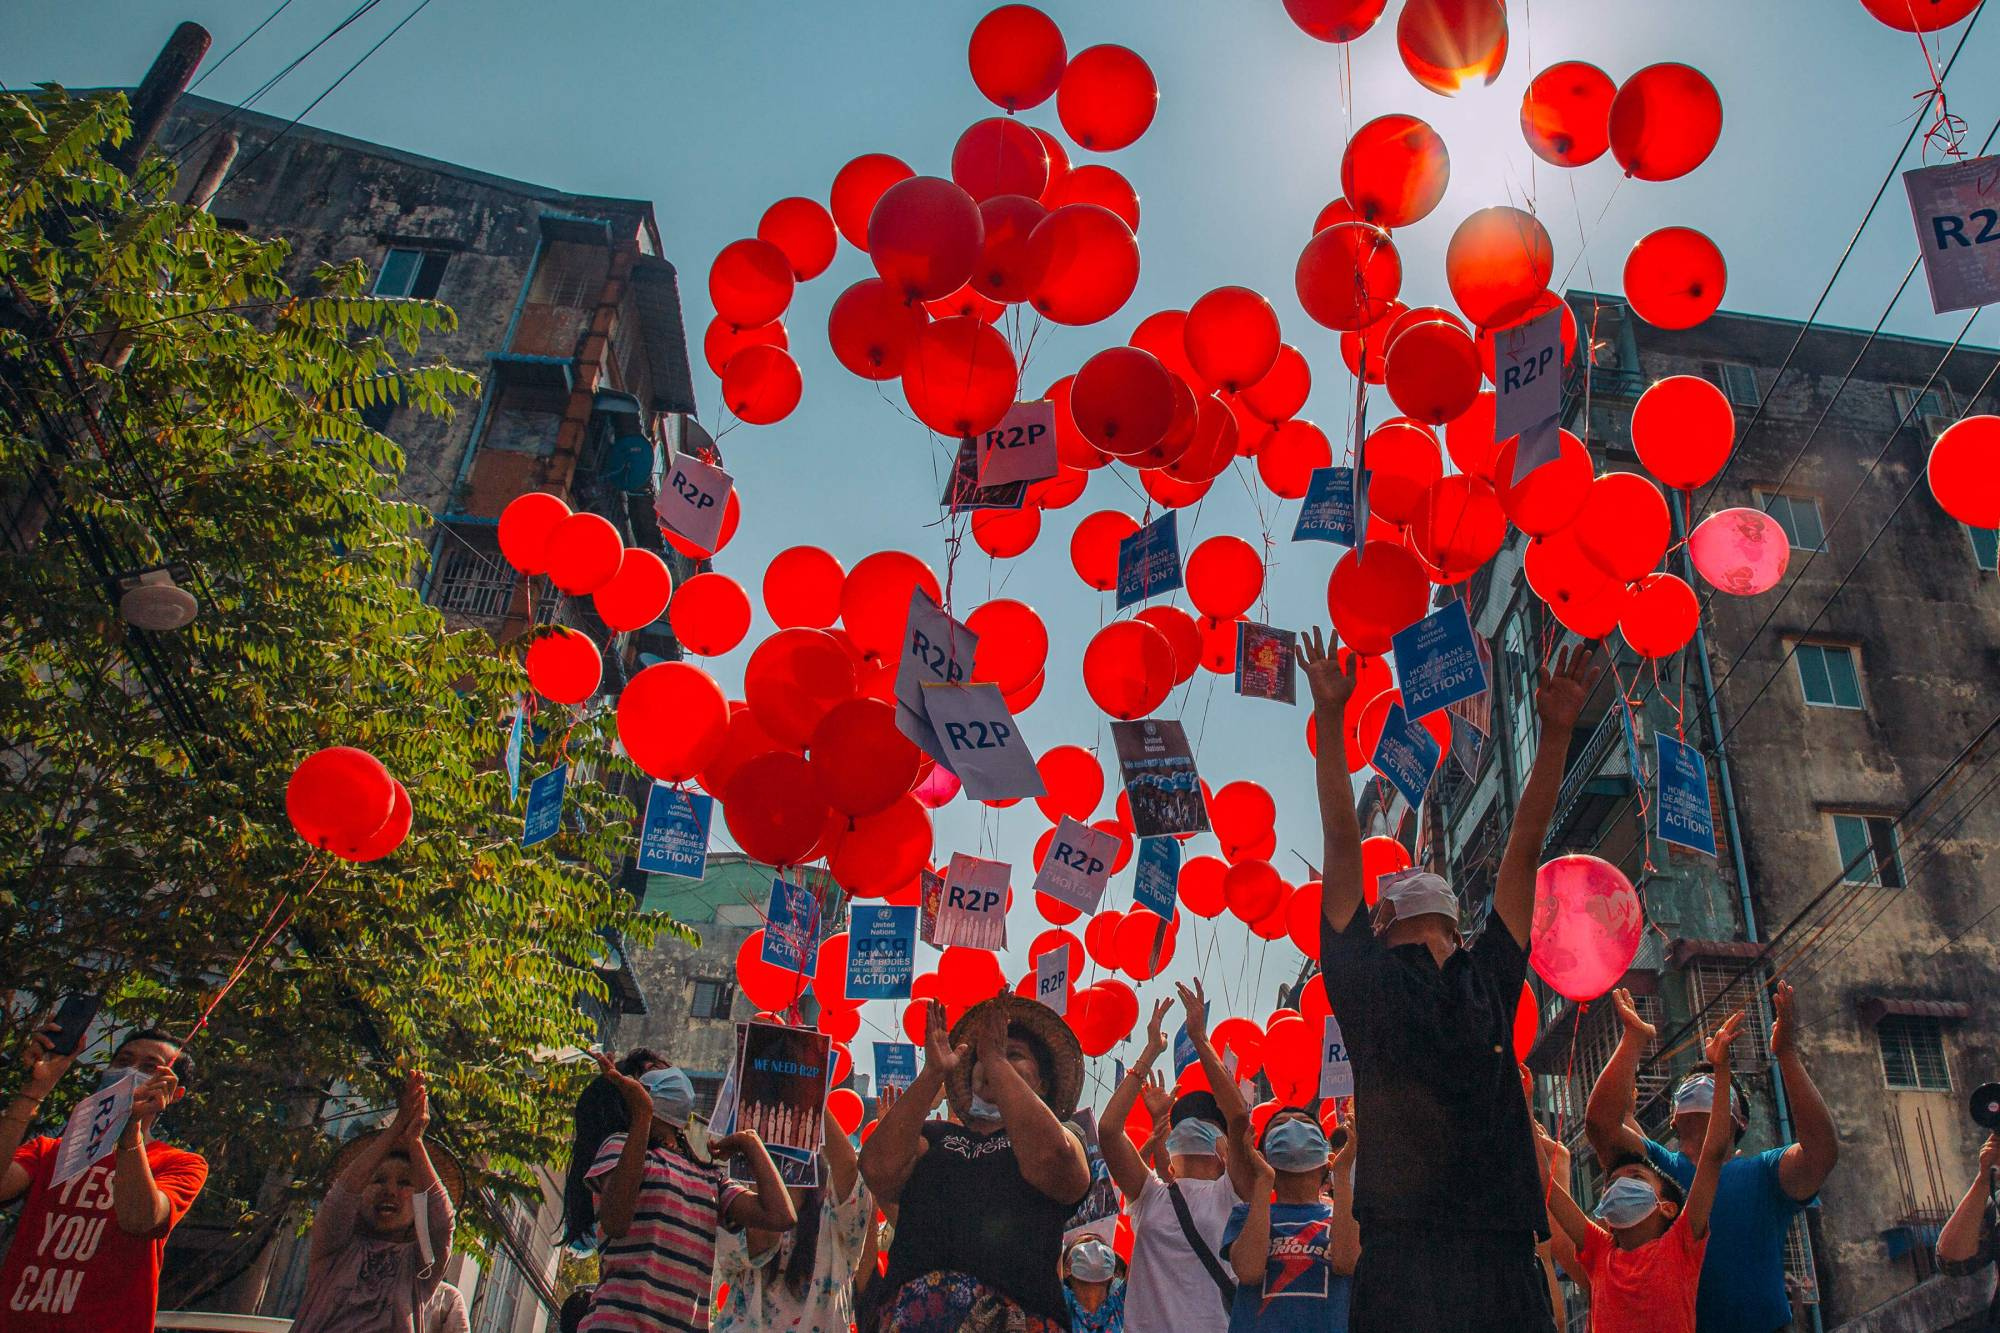 Residents release balloons on Monday bearing messages calling for international help following the coup in Myanmar, in Yangon's Hlaing township.  | FACEBOOK / VIA AFP-JIJI